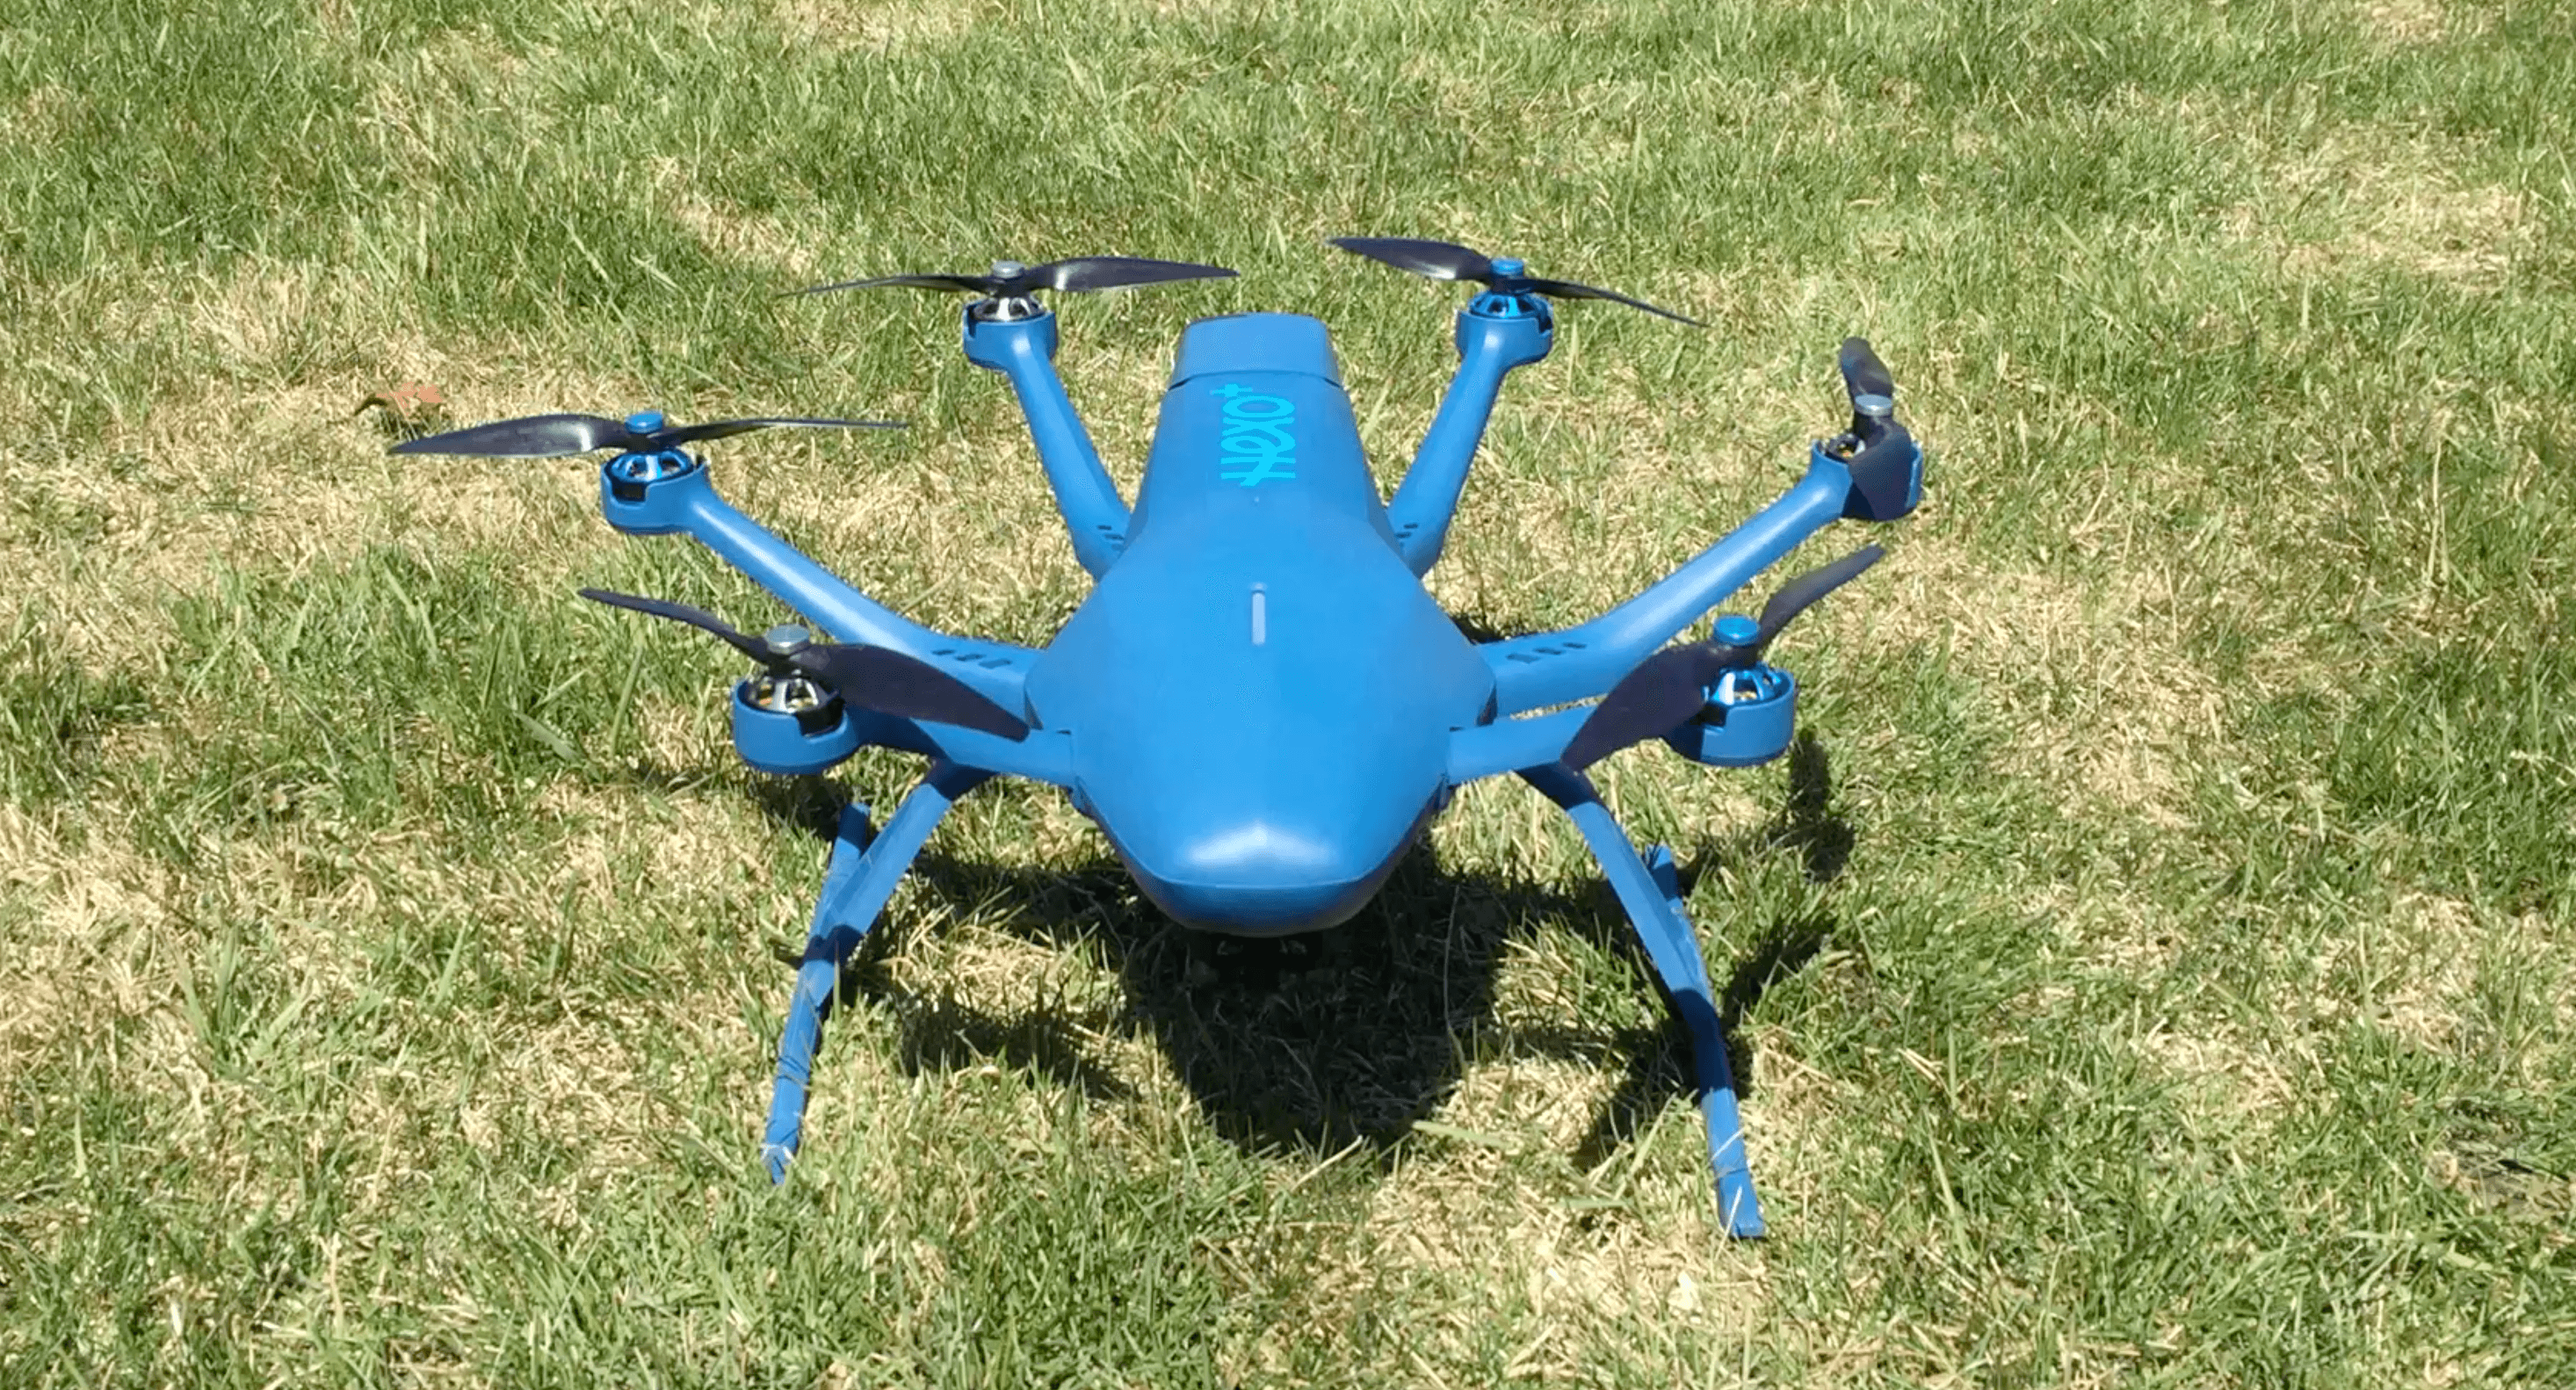 Hexo+ Hexoplus Drone Review and Tips